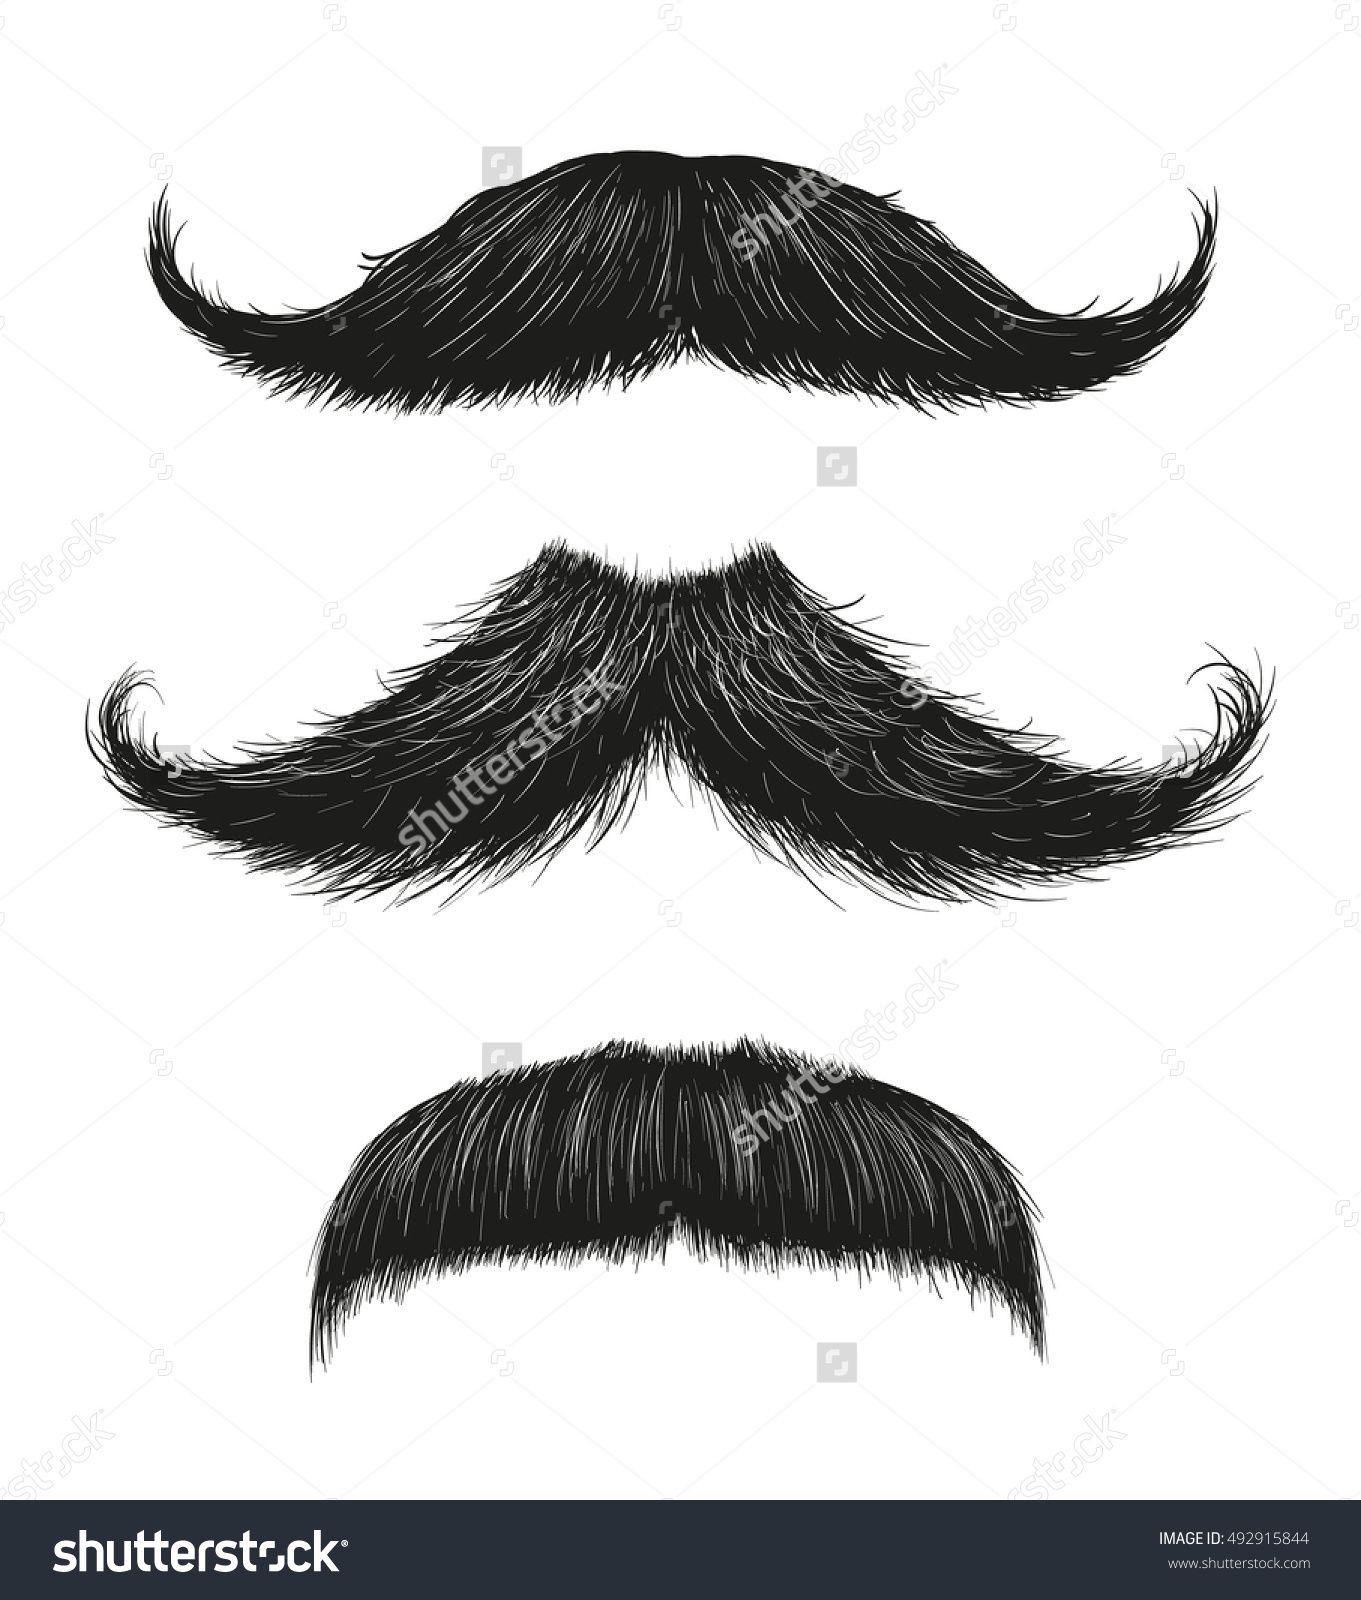 Three hand drawn vector mustaches. Fashionable old facial hair styles.